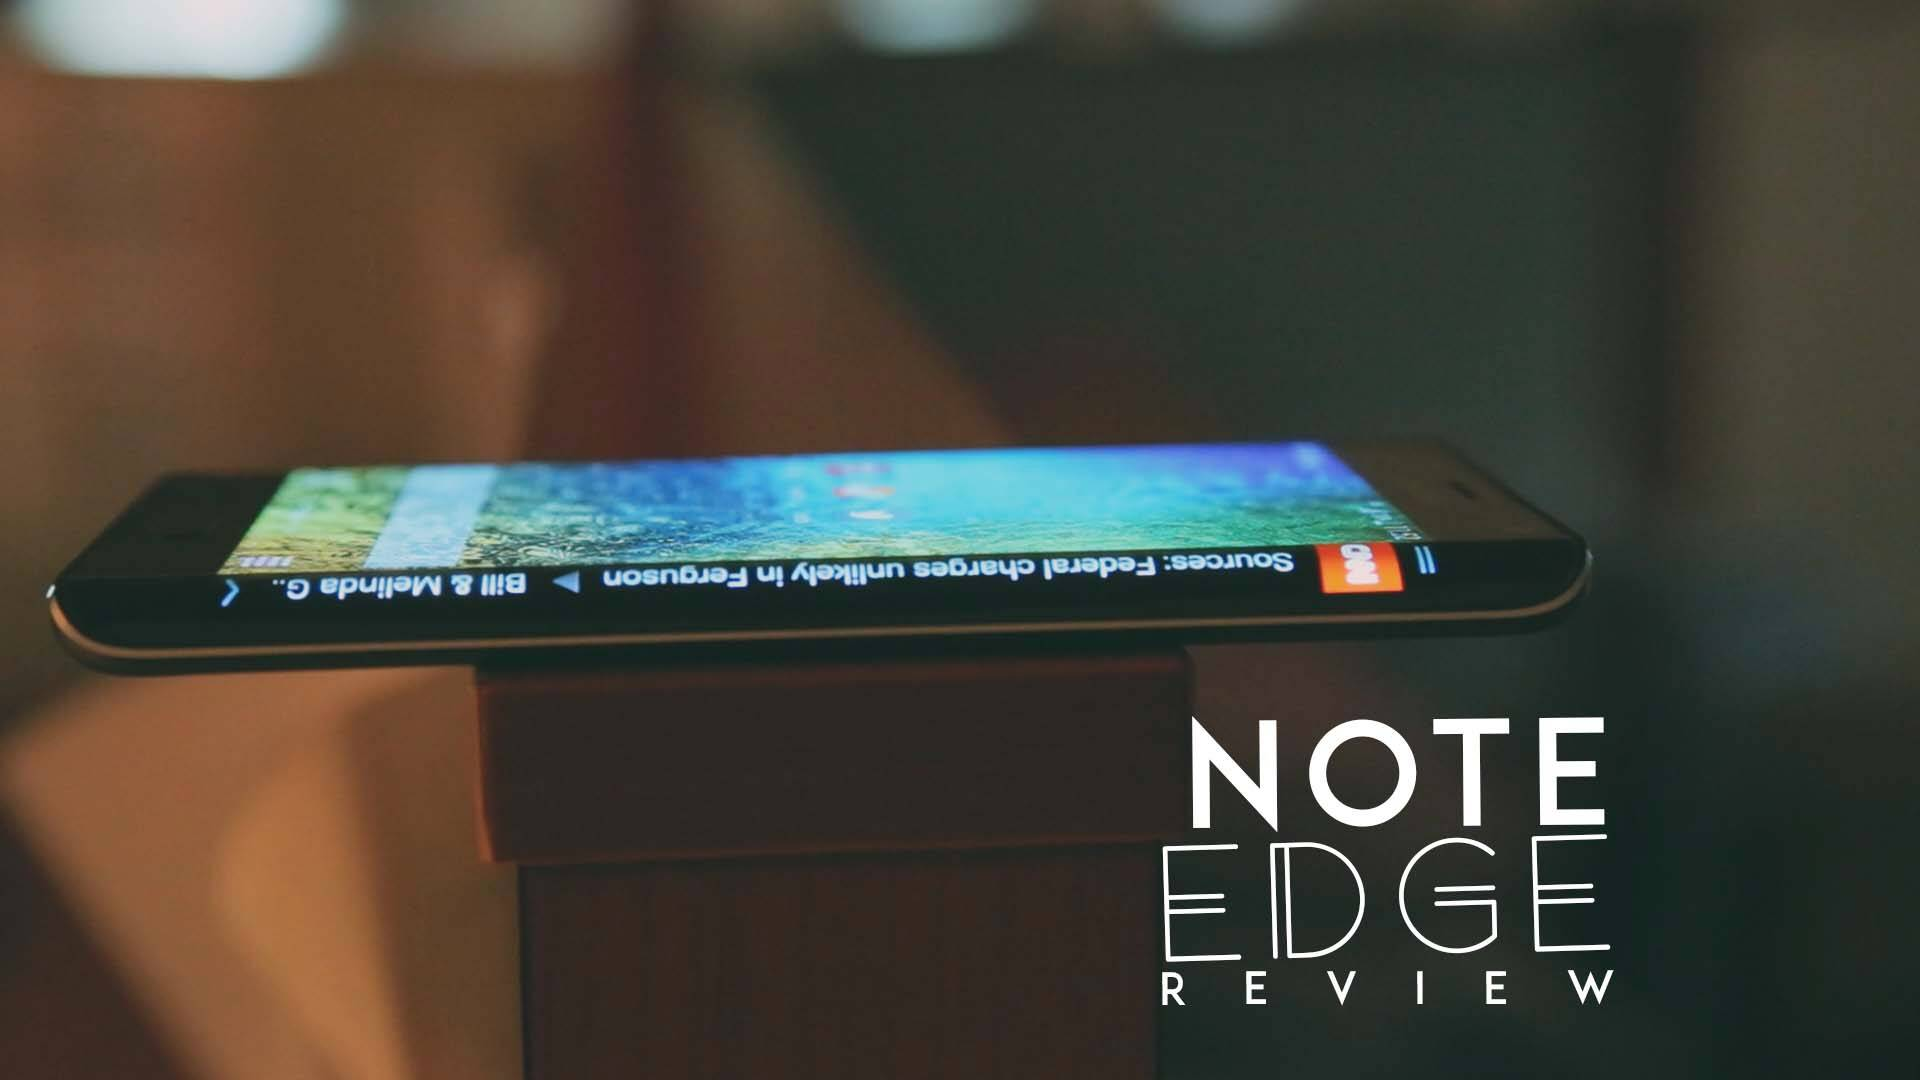 The Samsung Galaxy Note now has a clear Edge